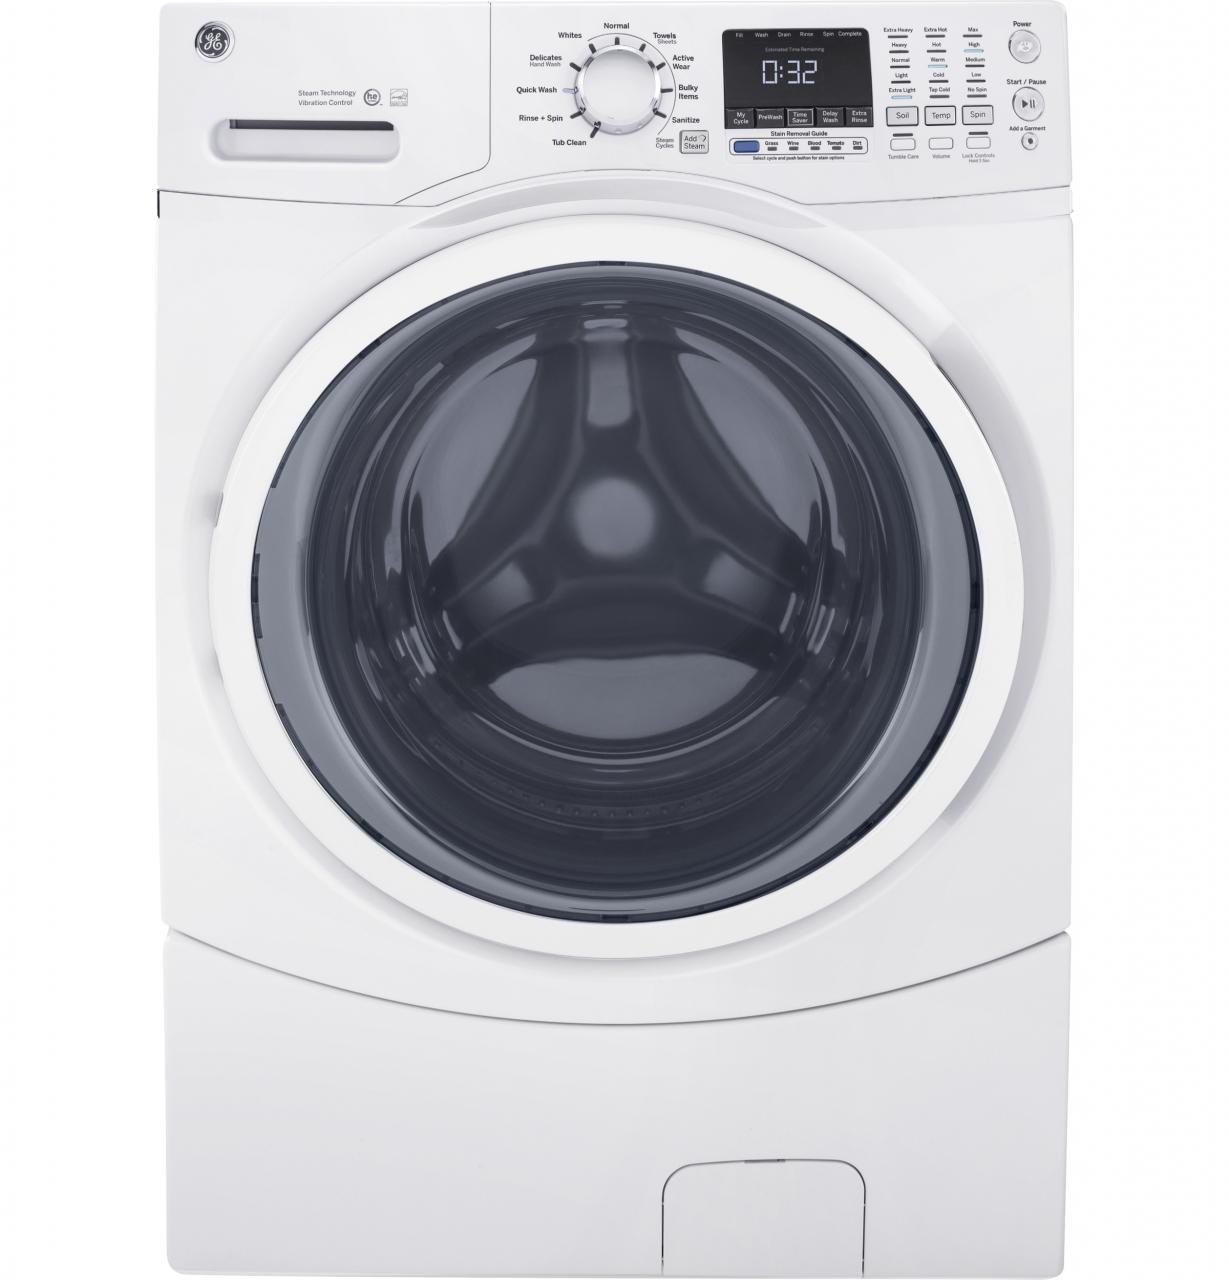 Wiring Diagram Ge Washer Front Washing Machine Whse5240d1ww Schematic Explained Diagrams Dishwasher Parts Load Trusted